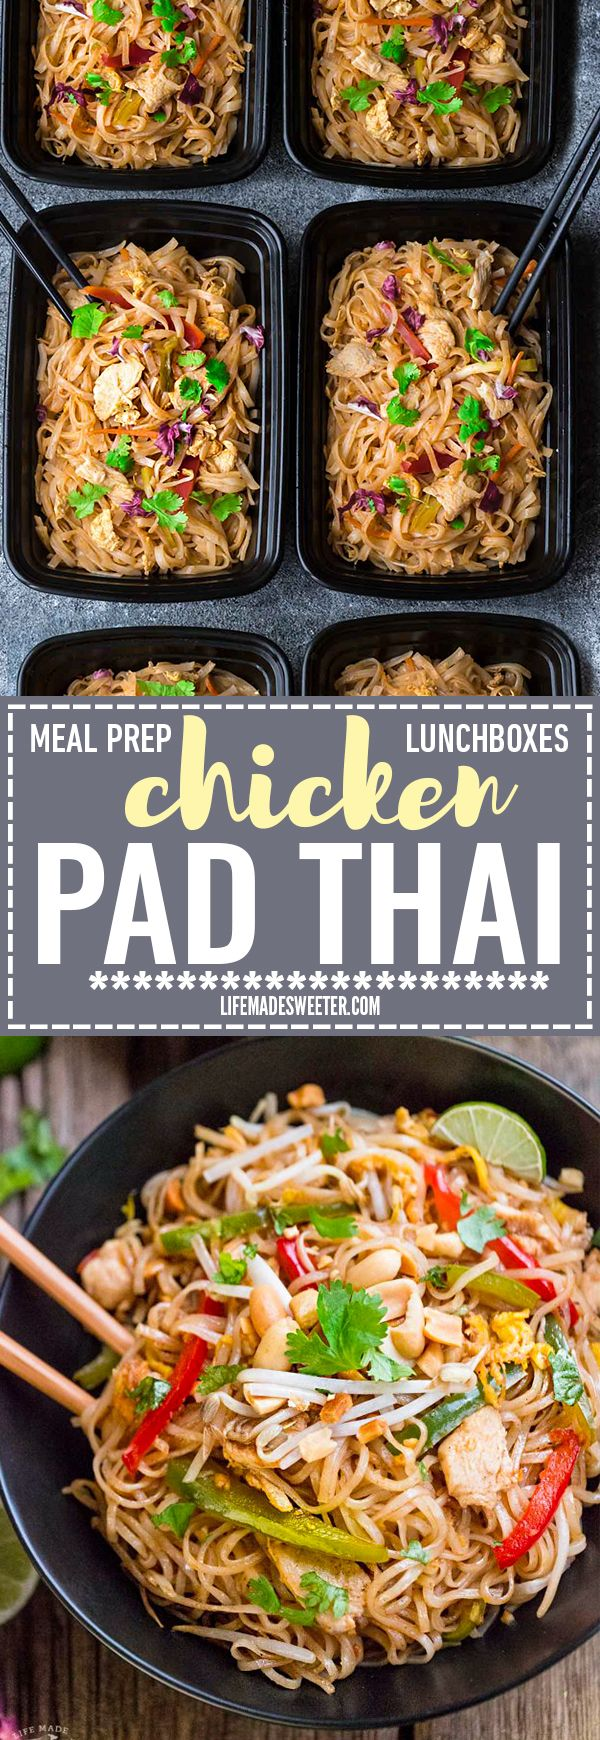 Easy and Authentic Chicken Pad Thai makes the perfect simple weeknight meal and great for Sunday meal prep and leftovers are great for school lunchboxes and work lunch bowls. Best of all, this recipe has gluten free & paleo-friendly options and can cook u